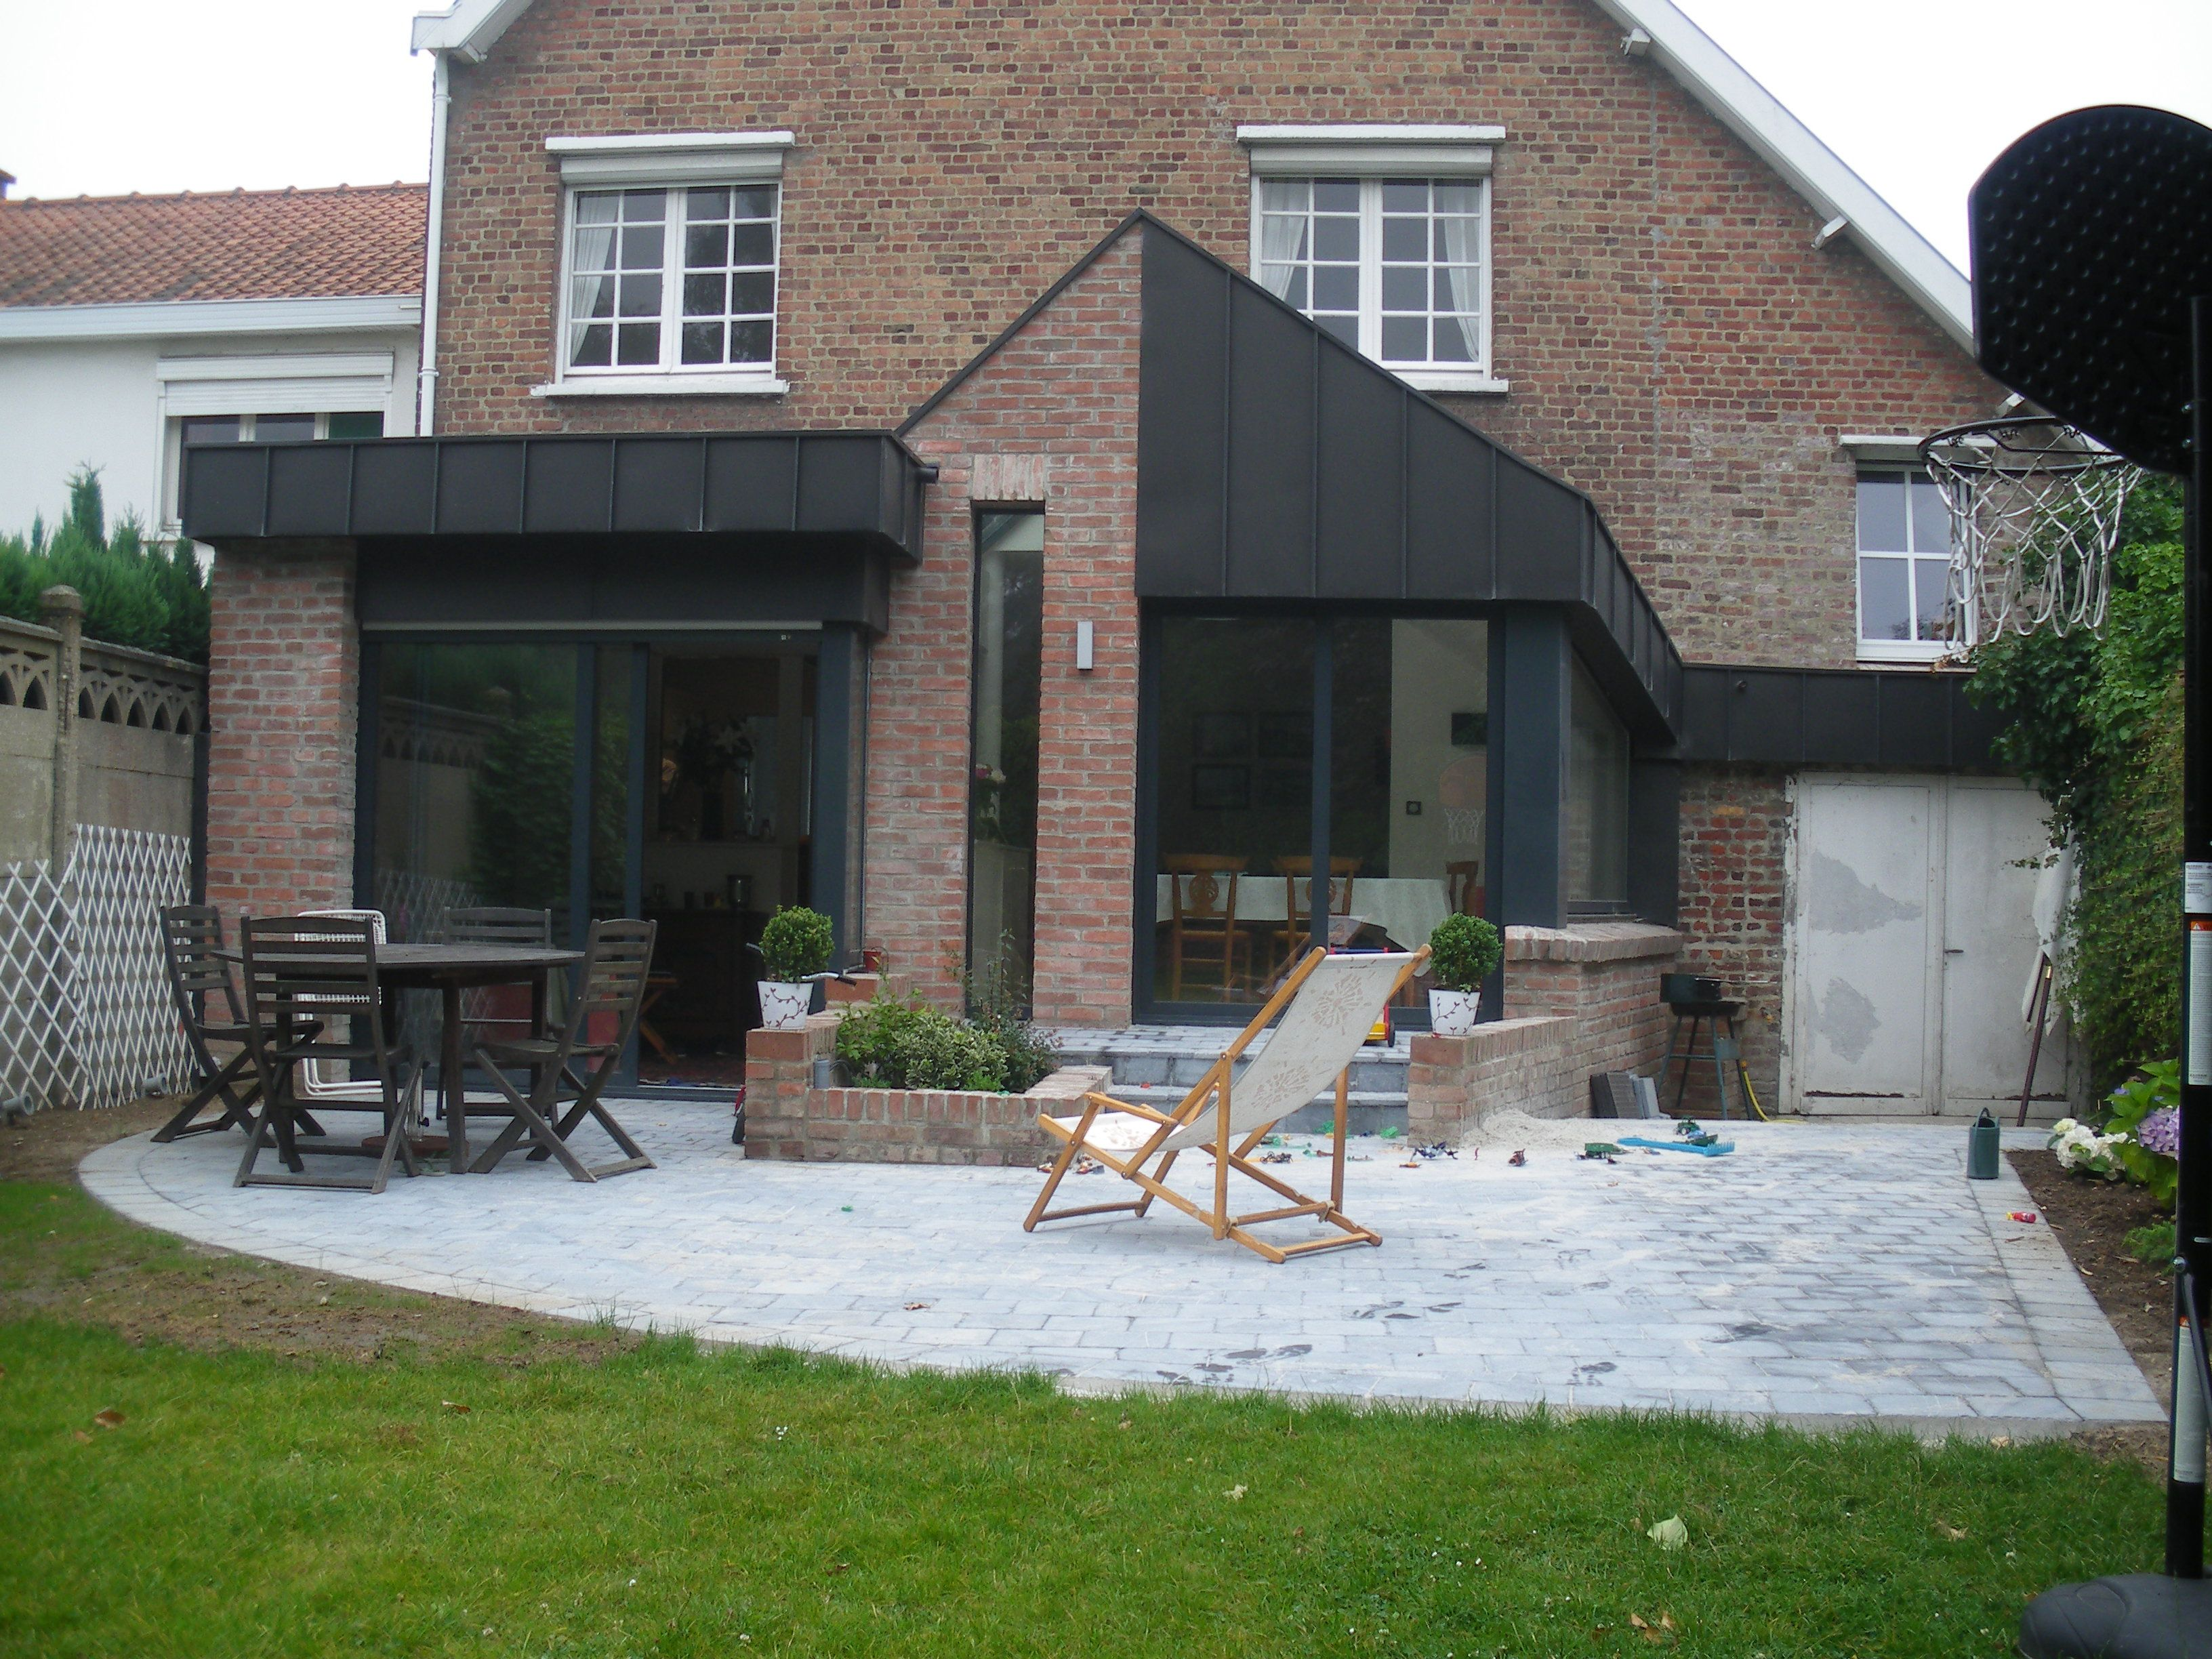 Briques zinc noir extension maison pinterest for Extension maison